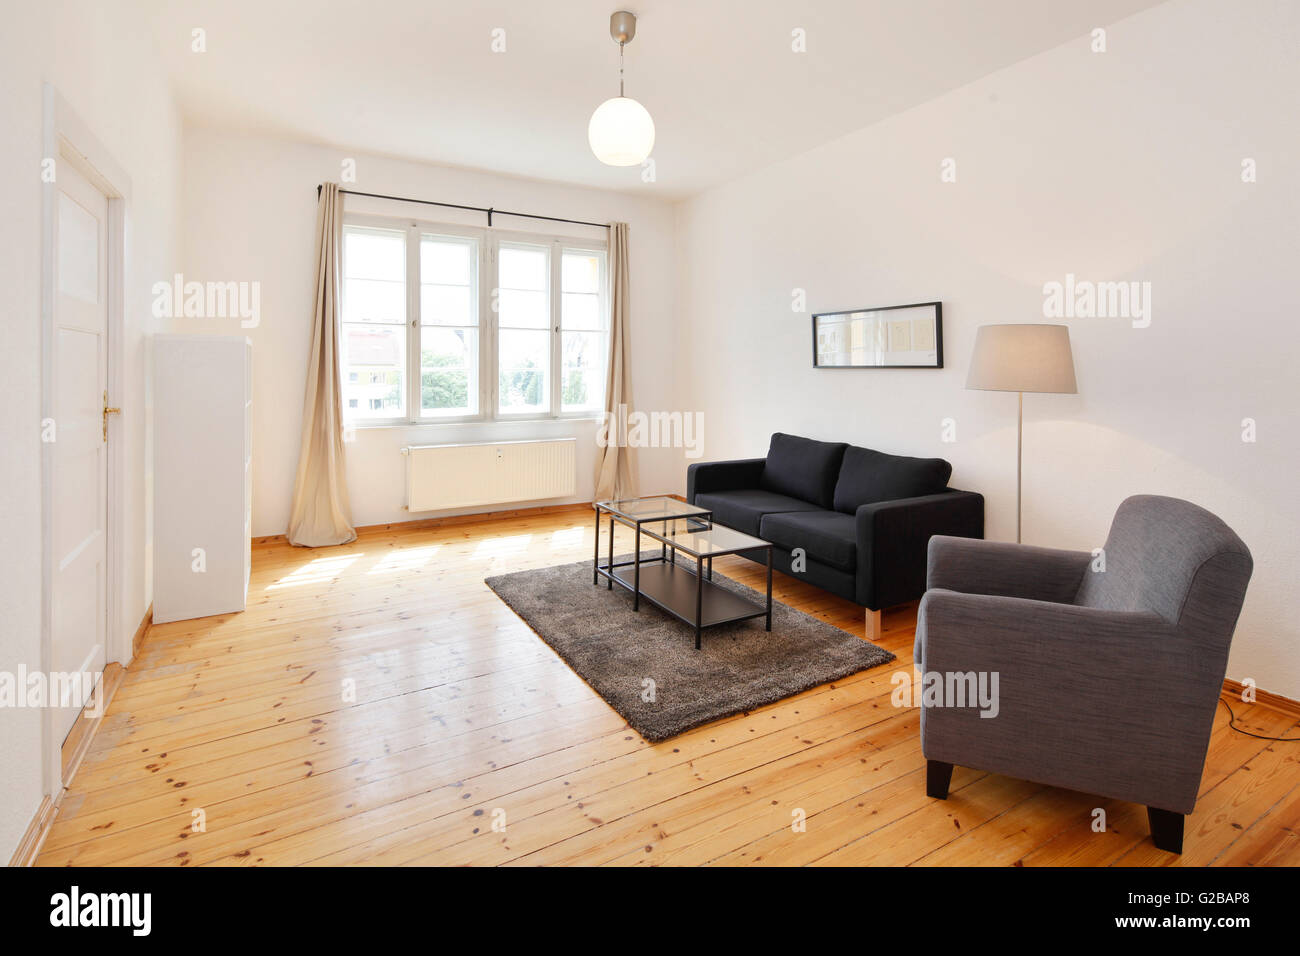 Wisbyer Strasse 59. Modern living with minimal furnishing and wood ...